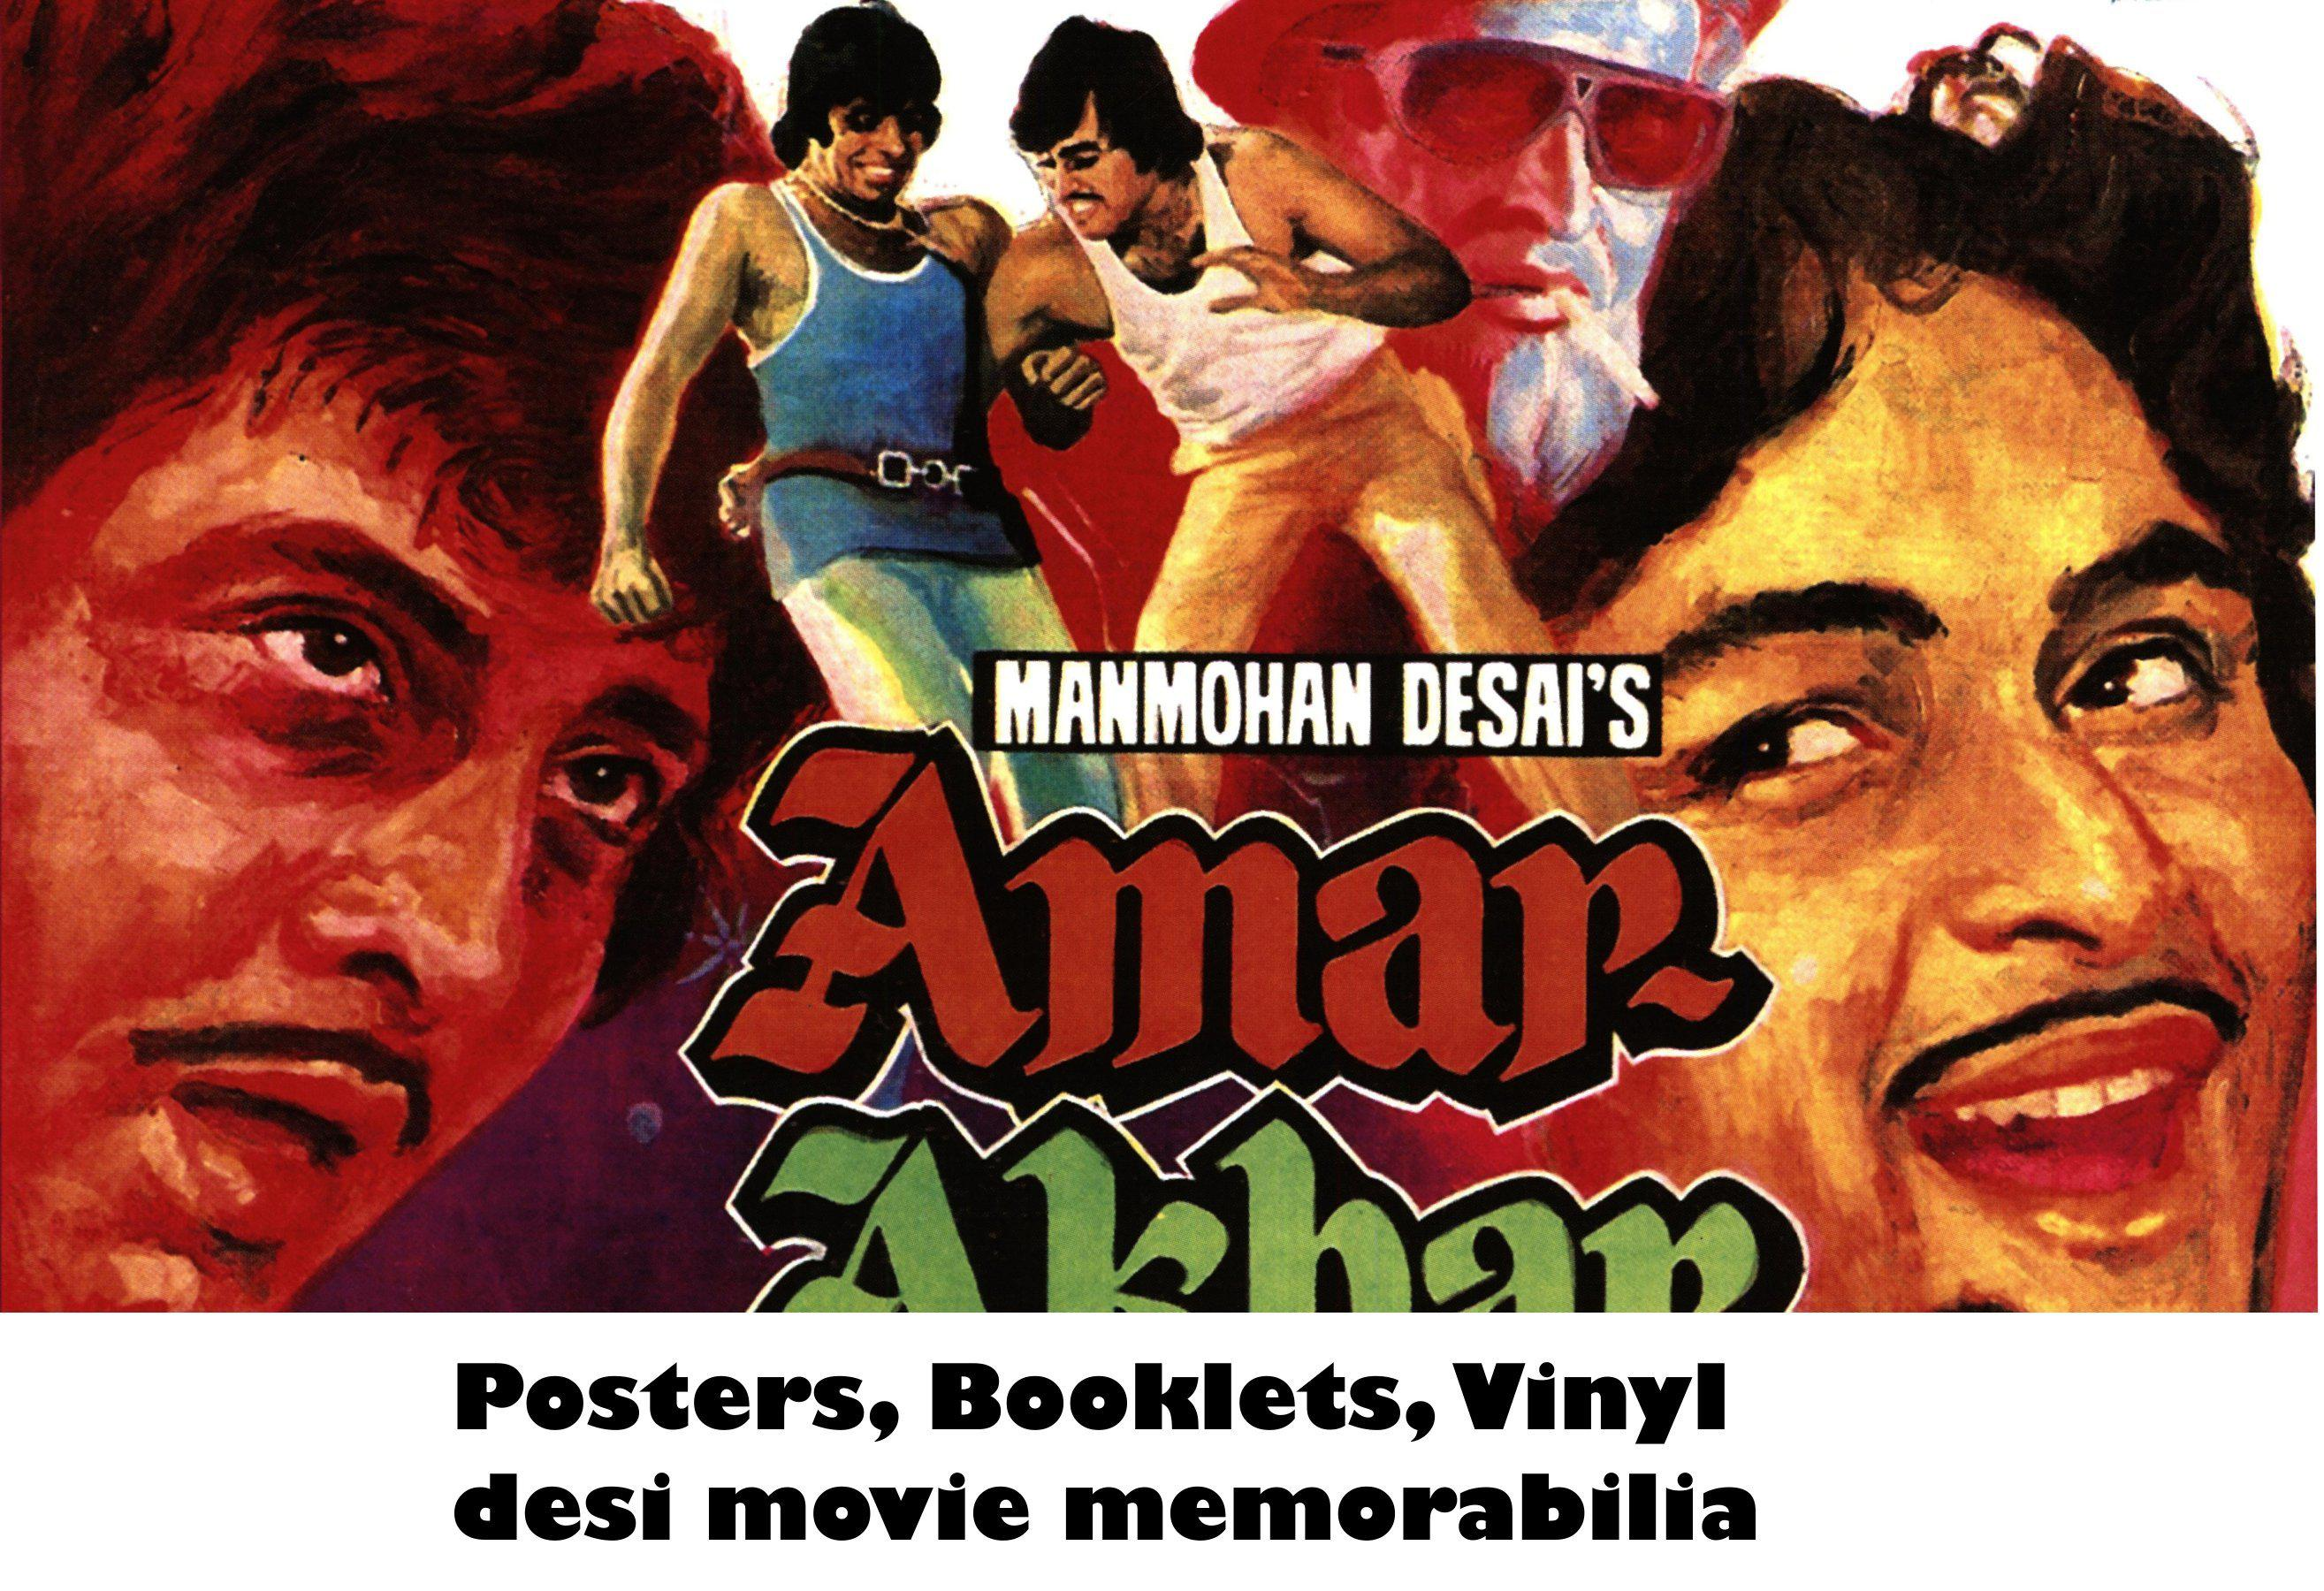 Rare Desi Movie Posters & Art